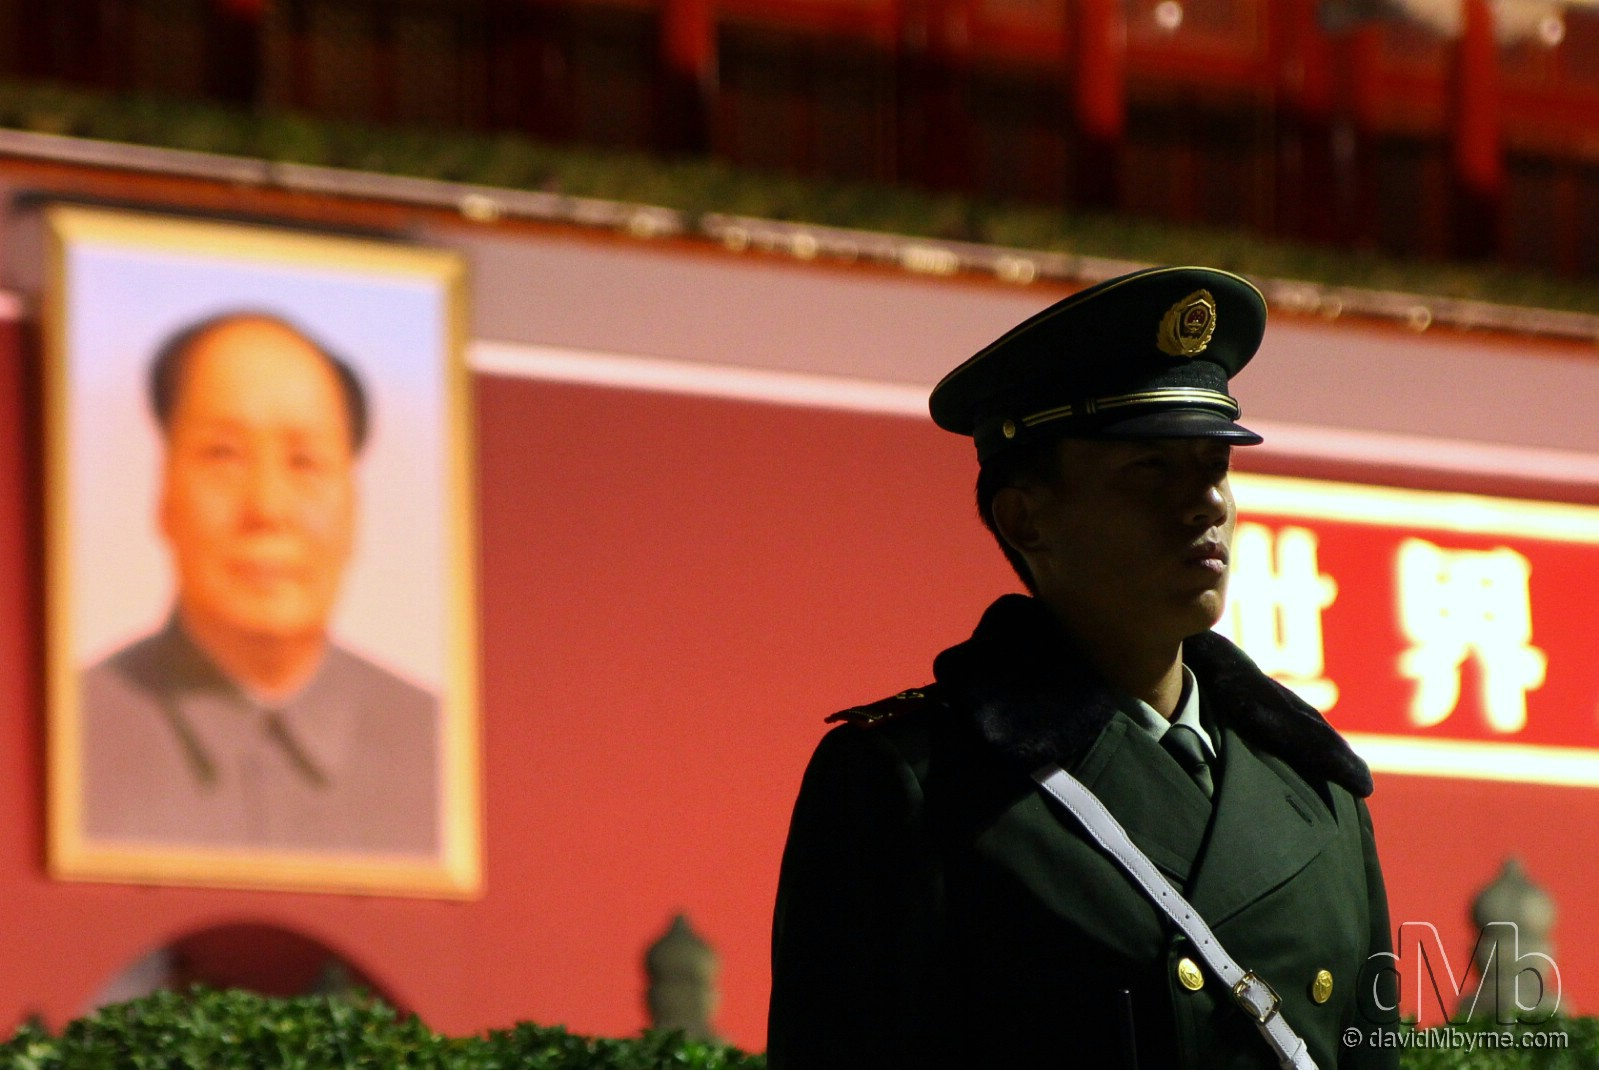 Standing guard outside of Tian'anmen Gate, Beijing, China. October 27th, 2012 (EOS 60D || Tamron 28-75mm || 75mm, 1/125sec, f/3.2, iso1250)